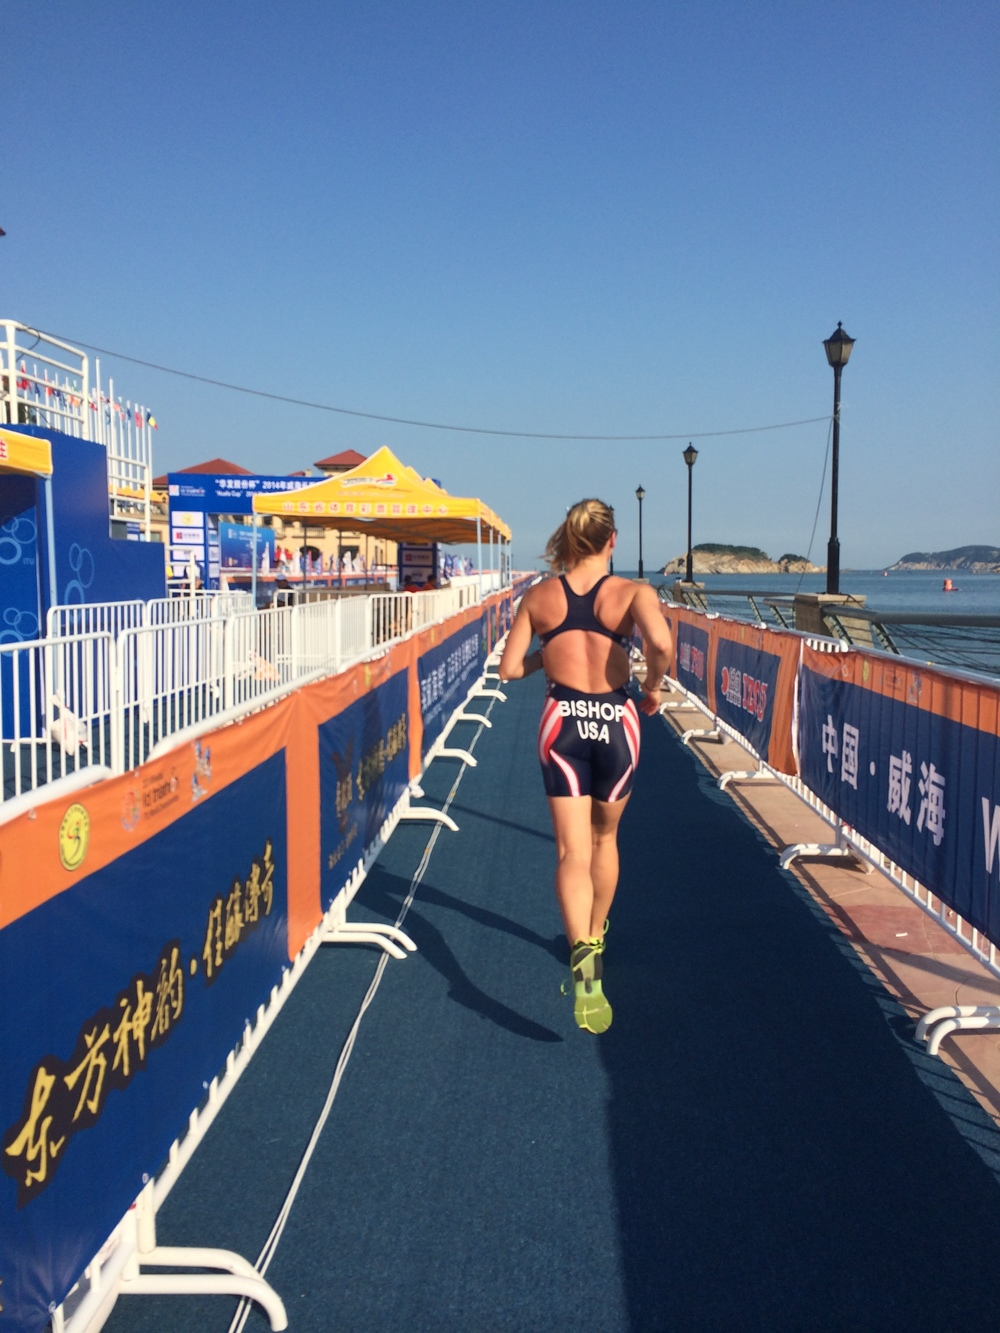 Triathlon - Worlds Team USA Run.JPG